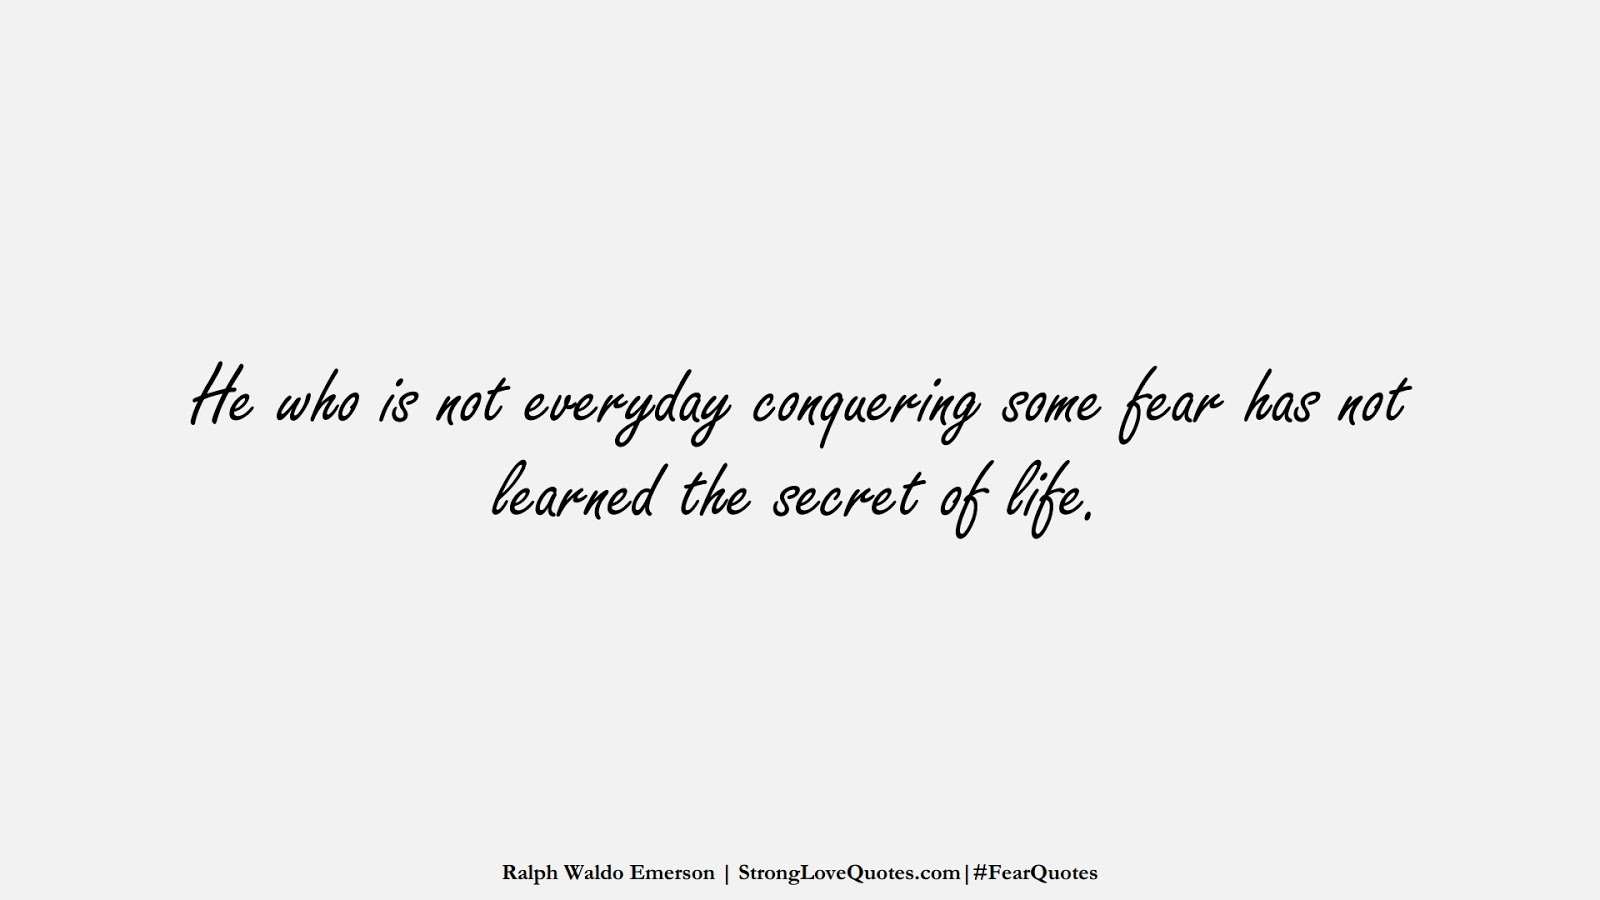 He who is not everyday conquering some fear has not learned the secret of life. (Ralph Waldo Emerson);  #FearQuotes